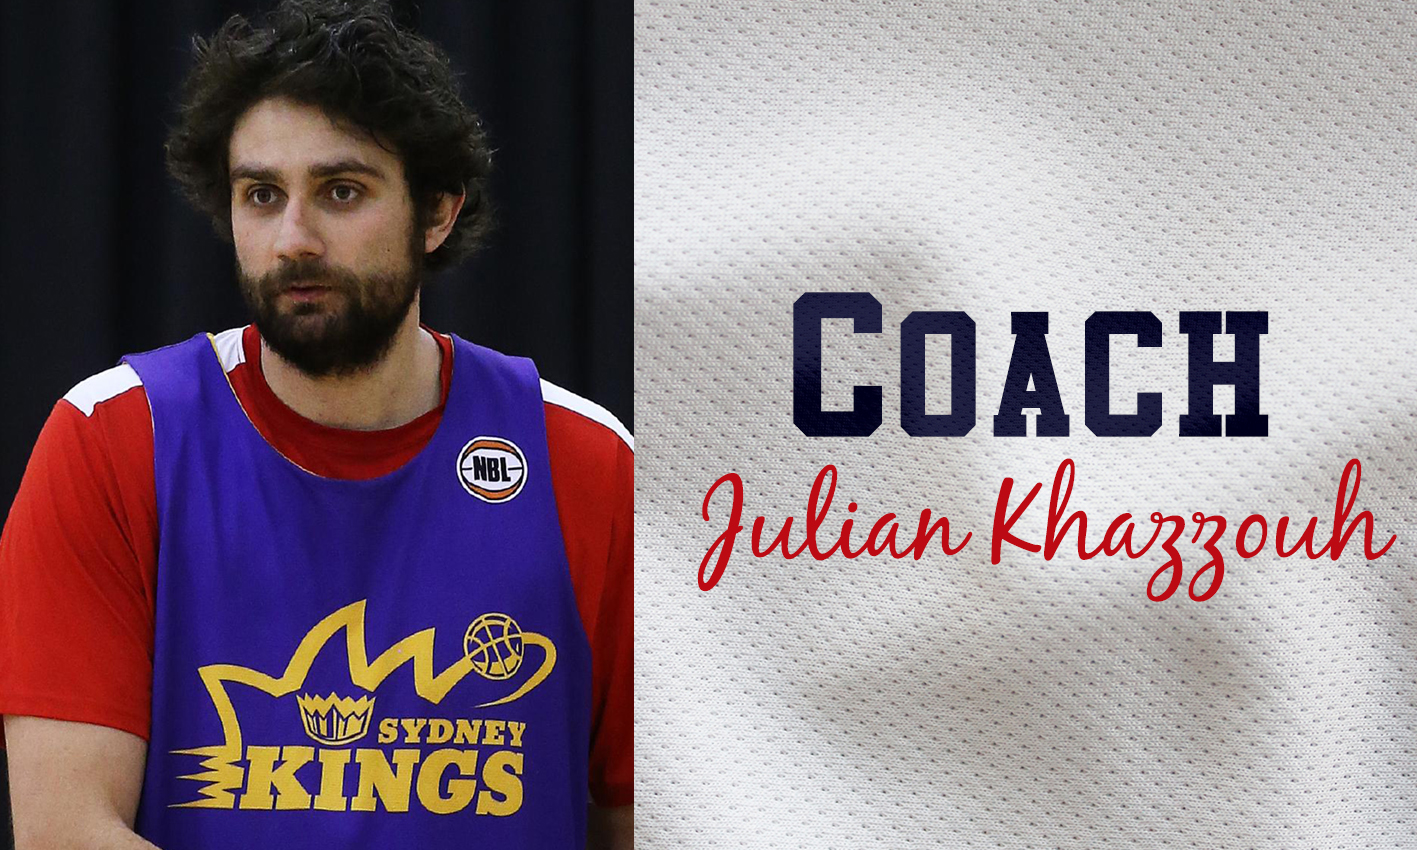 July School Holiday Basketball Camp – Olympic Park – Ages 5 to 15 – WITH COACH JULIAN KHAZZOUH